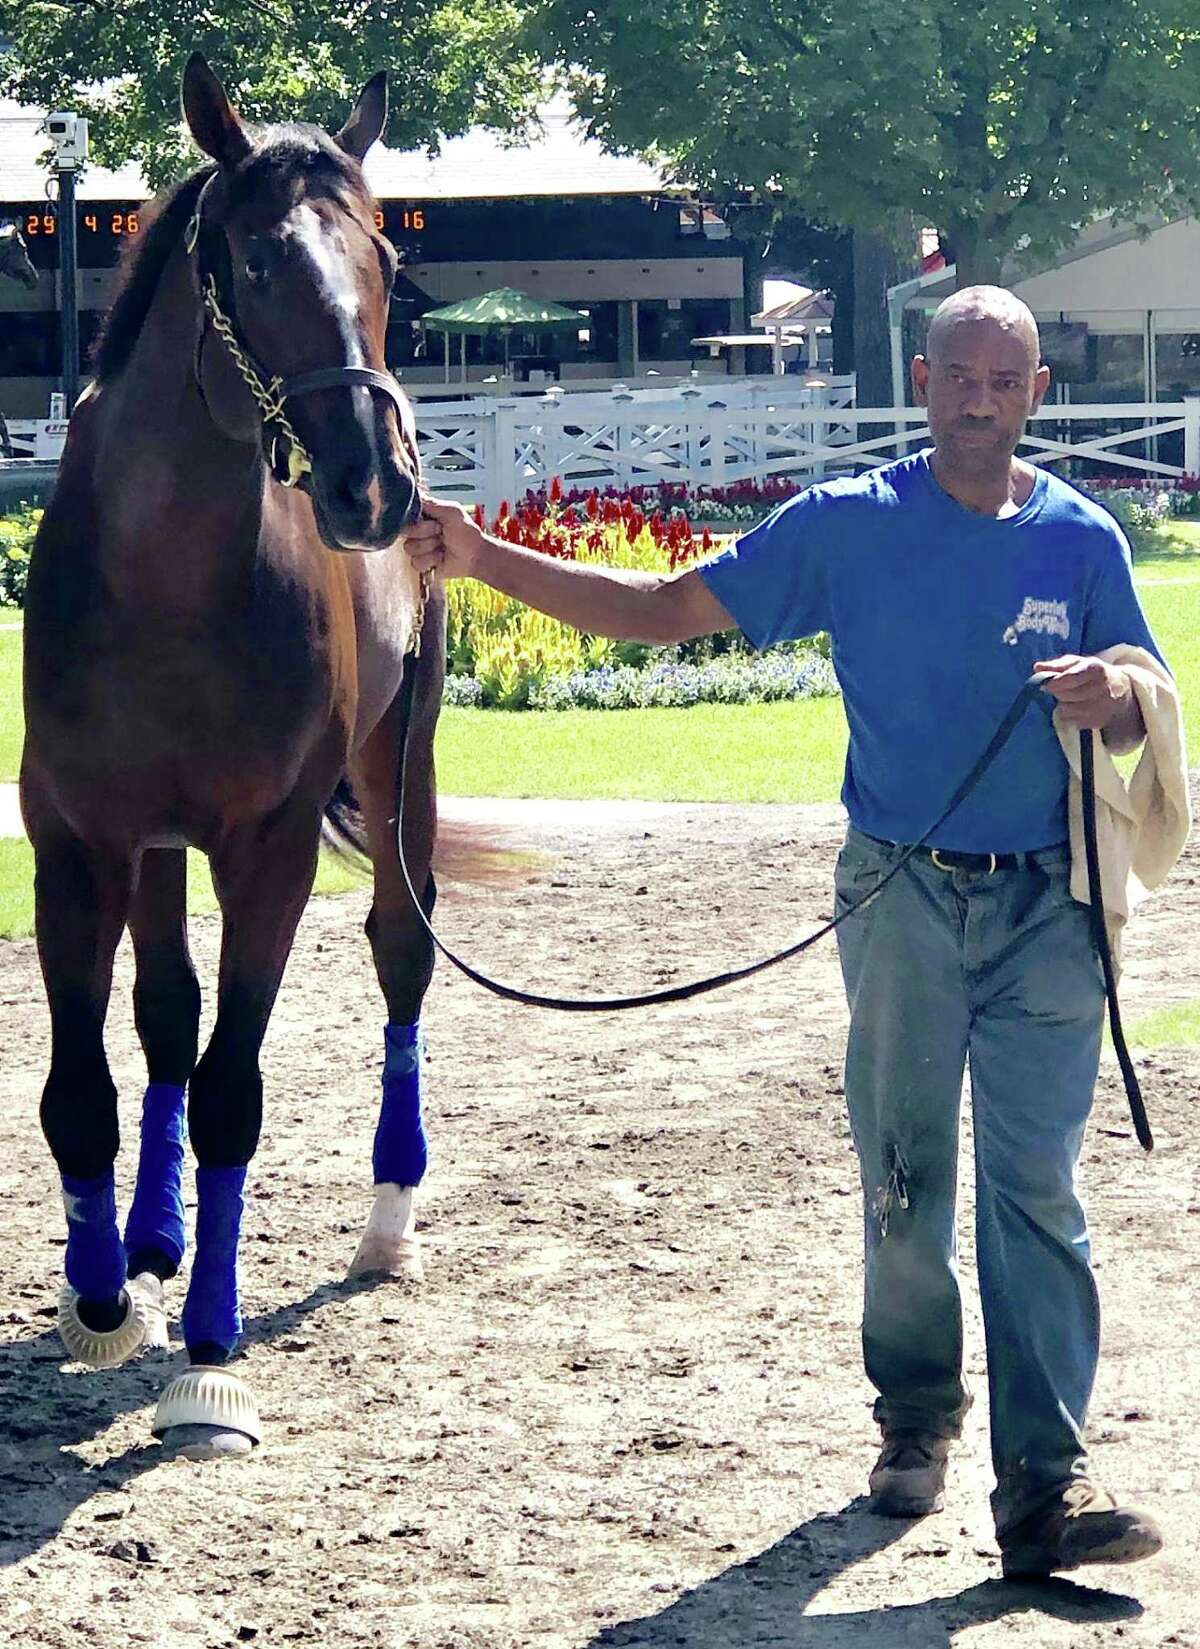 Come see what just might be the future on Monday. The Saratoga Race Course meet ends its 40-day (well, it was only 39 this year because of a day lost to extreme heat) season on Labor Day but not before they run the Grade I, $350,000 Hopeful for 2-year-olds. You just might be seeing a star of next year's Triple Crown series. This is the good-looking Green Light Go, who is unbeaten in two career starts and will look to make it three in the Hopeful. He was schooling in the Saratoga paddock Thursday morning, getting ready for his toughest day yet. Looking like he is ready to go (sorry, could not resist). (Tim Wilkin / Times Union)